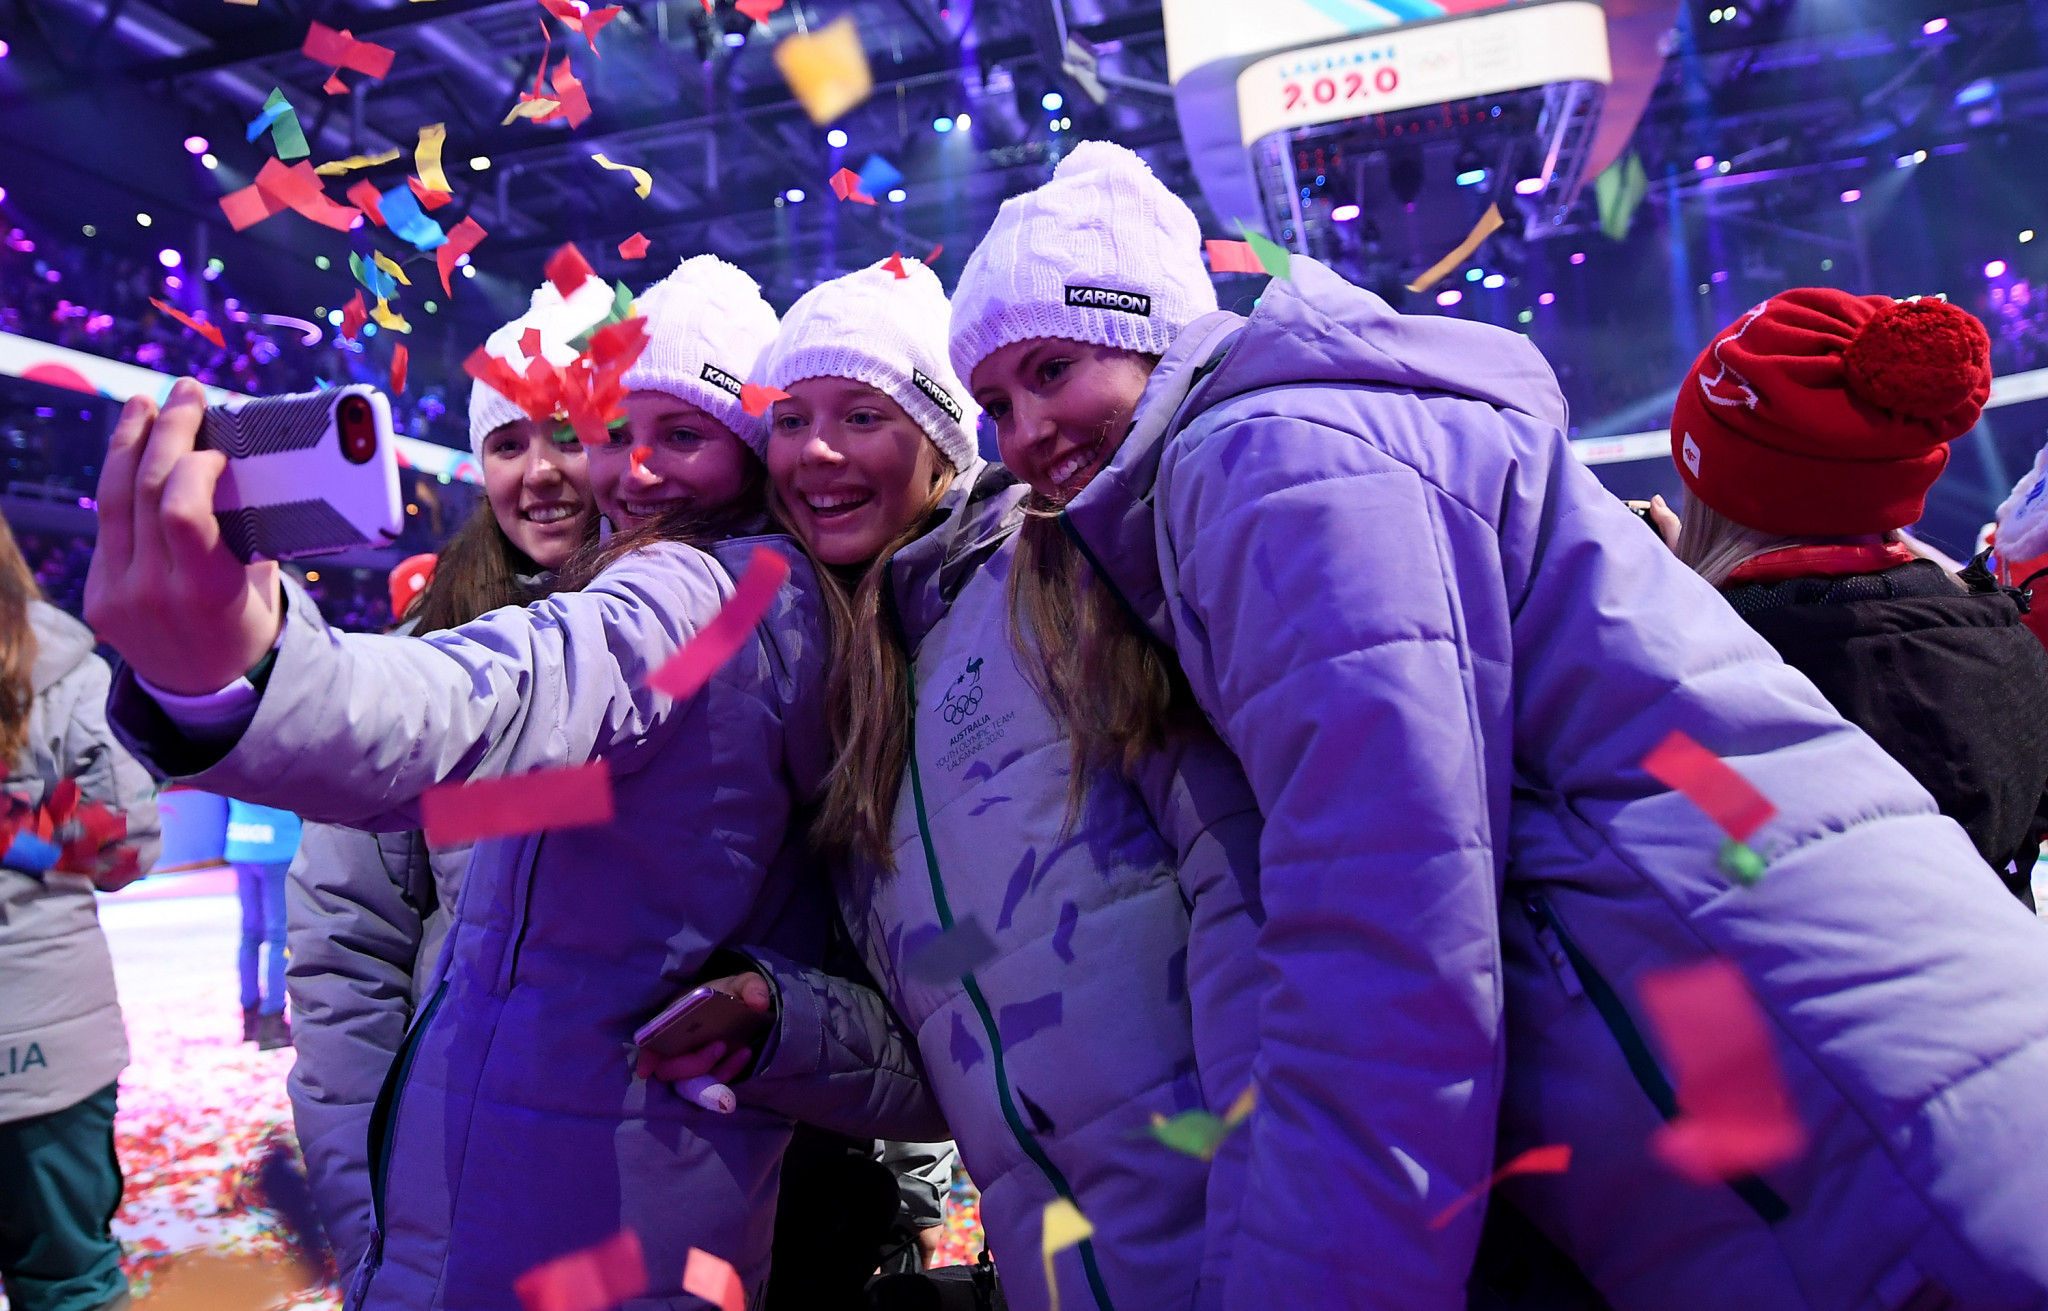 Athletes celebrate start of Winter Youth Olympic Games at Lausanne 2020 Opening Ceremony